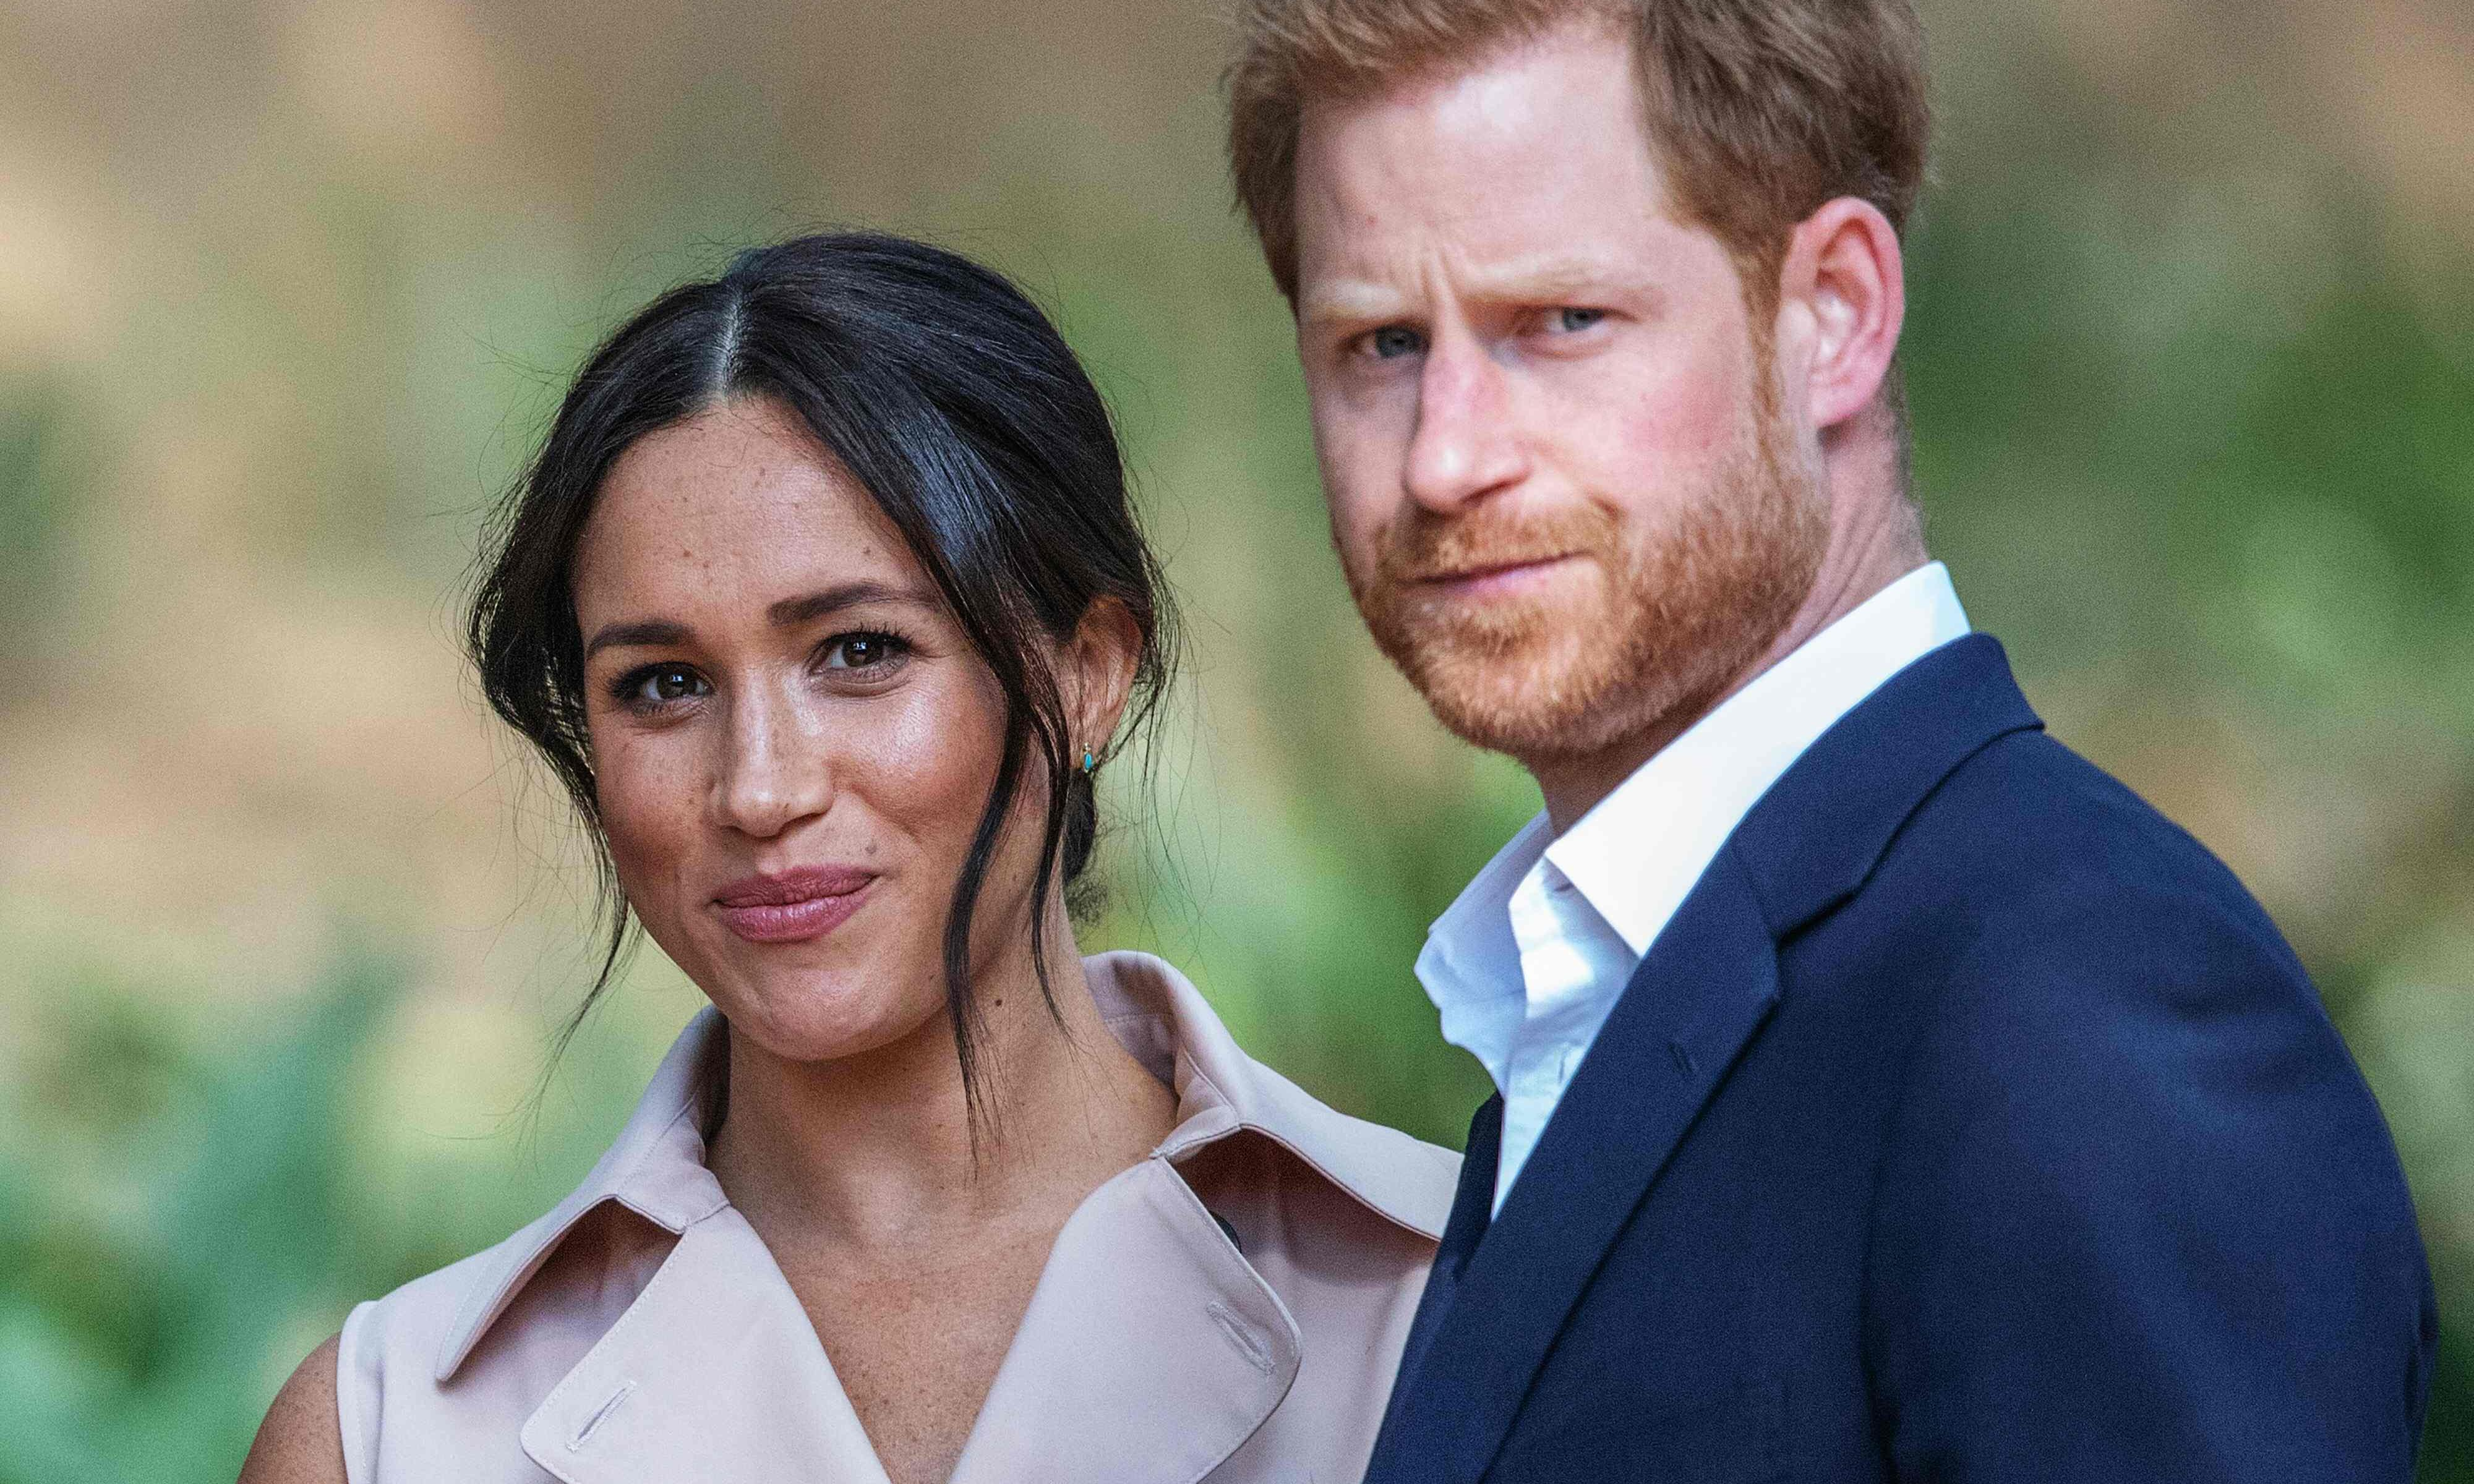 Meghan just wants to be treated fairly by the press – and I don't blame her